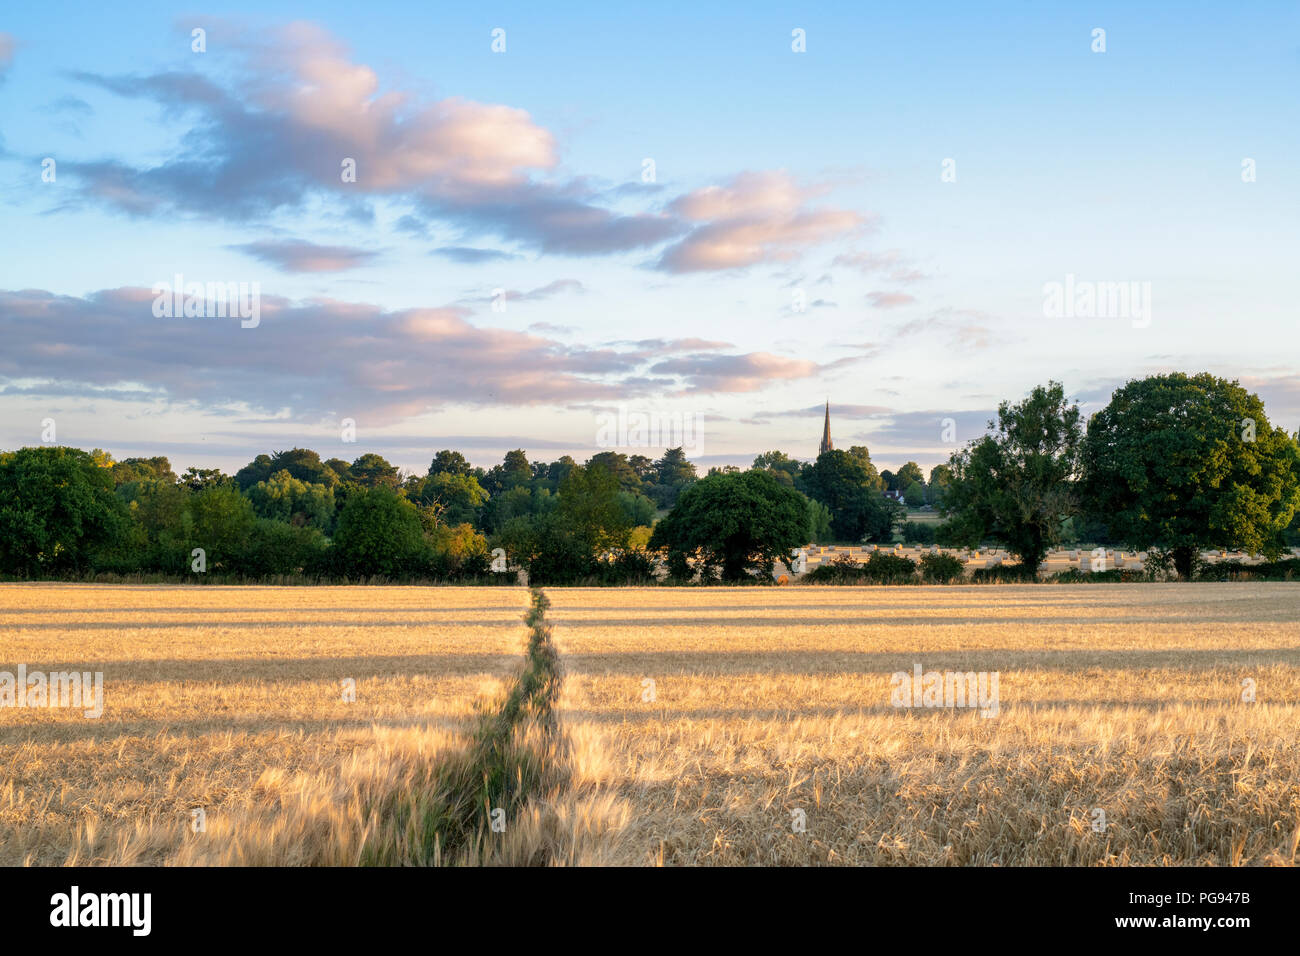 Hordeum vulgare. Morning light over a Barley field in summer. Kings Sutton, Northamptonshire, UK - Stock Image